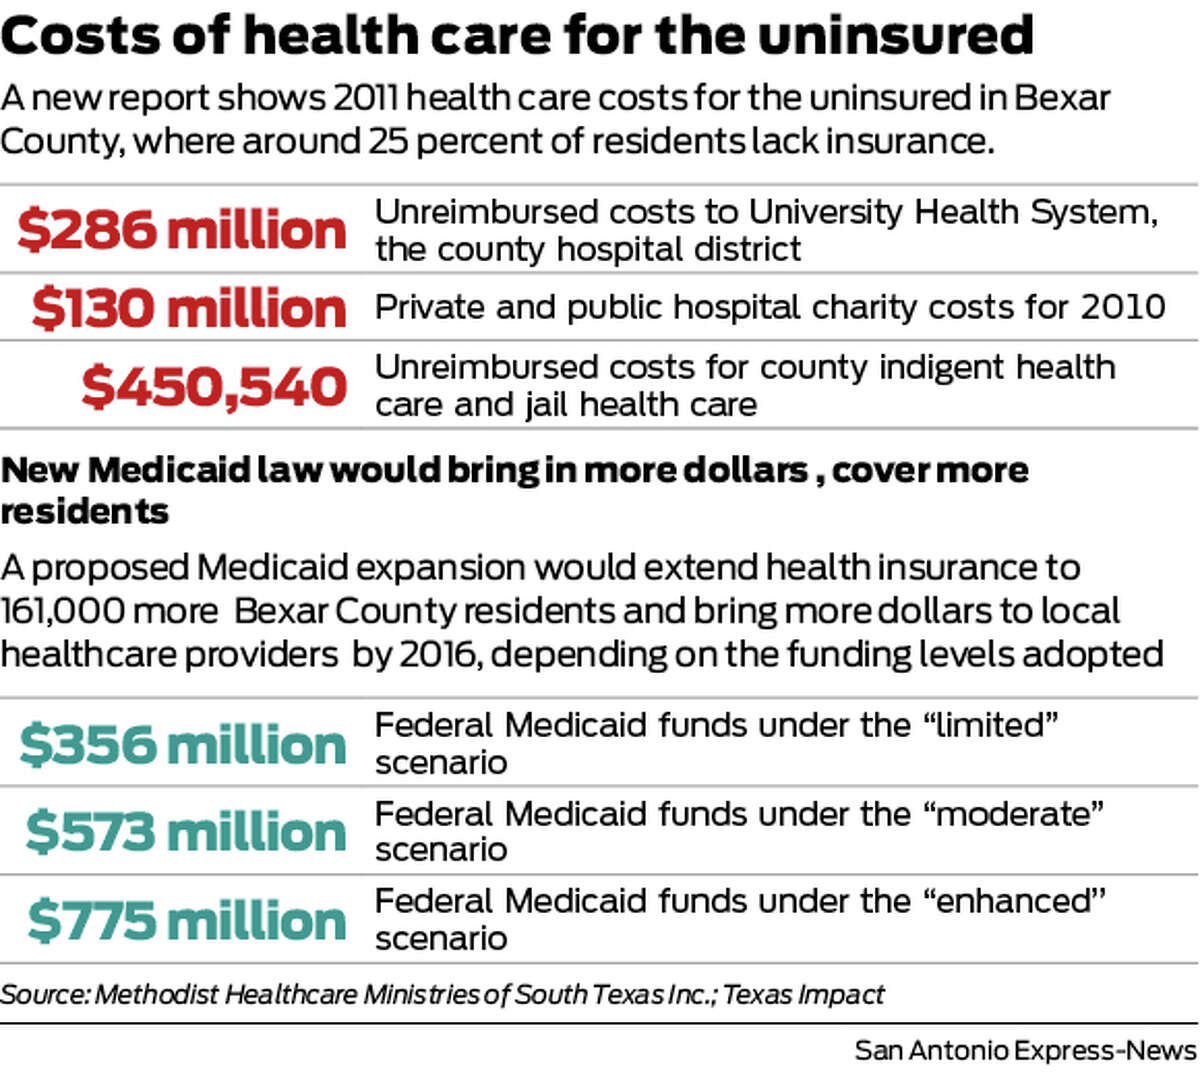 A new report shows 2011 health care costs for the uninsured in Bexar County, where around 25 percent of residents lack insurance.